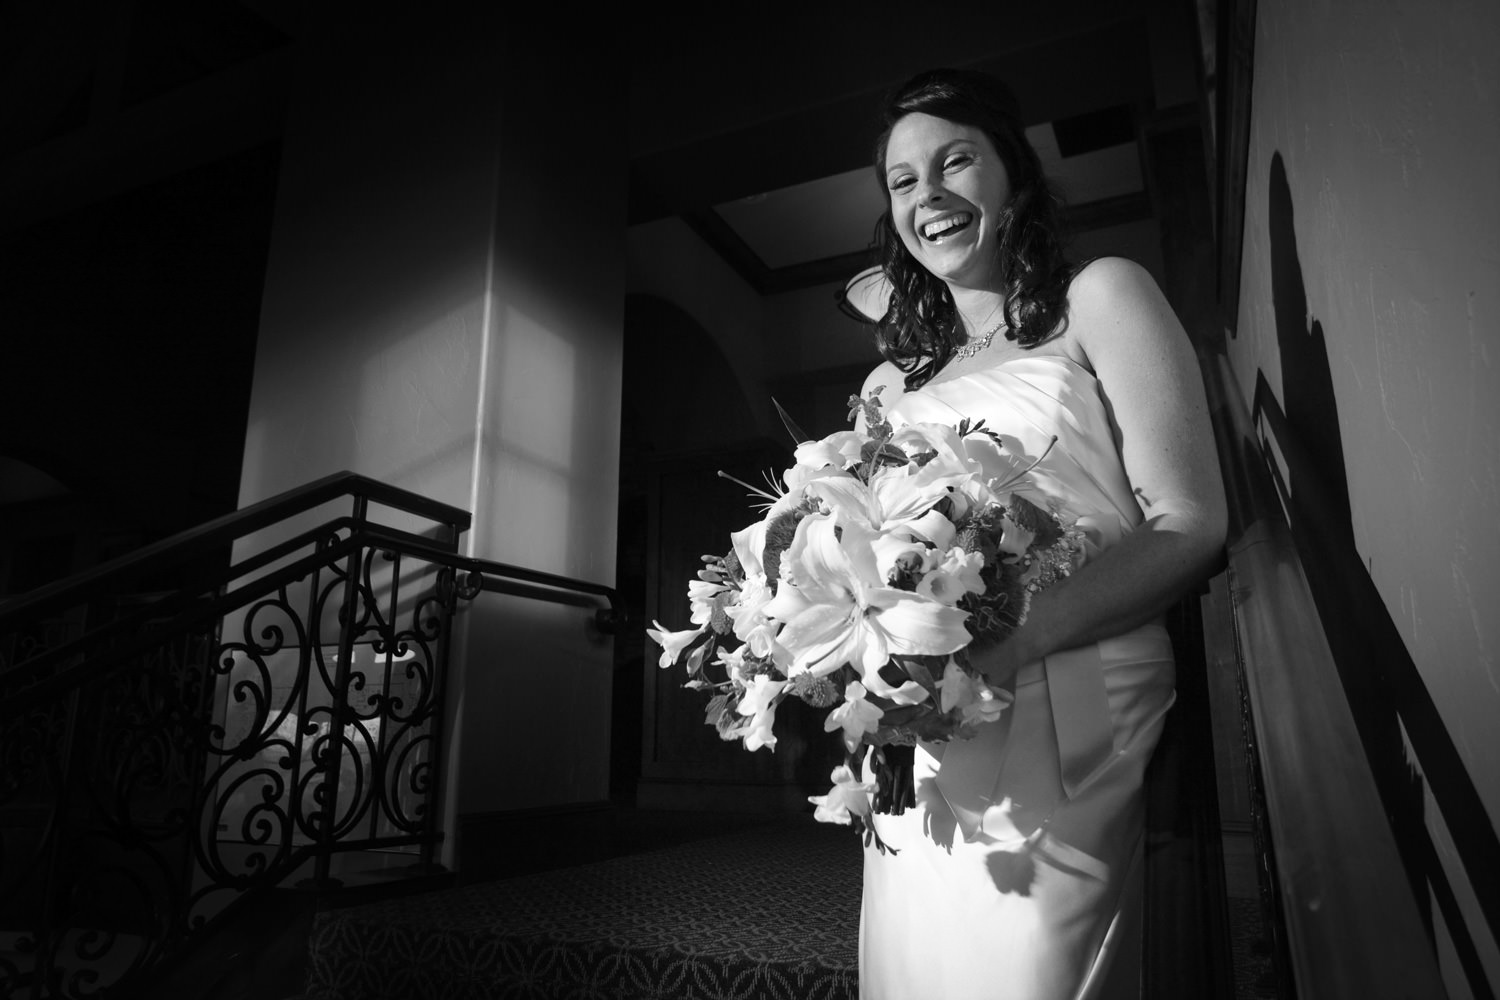 centennial-valley-country-club-wedding-tomKphoto-028.jpg